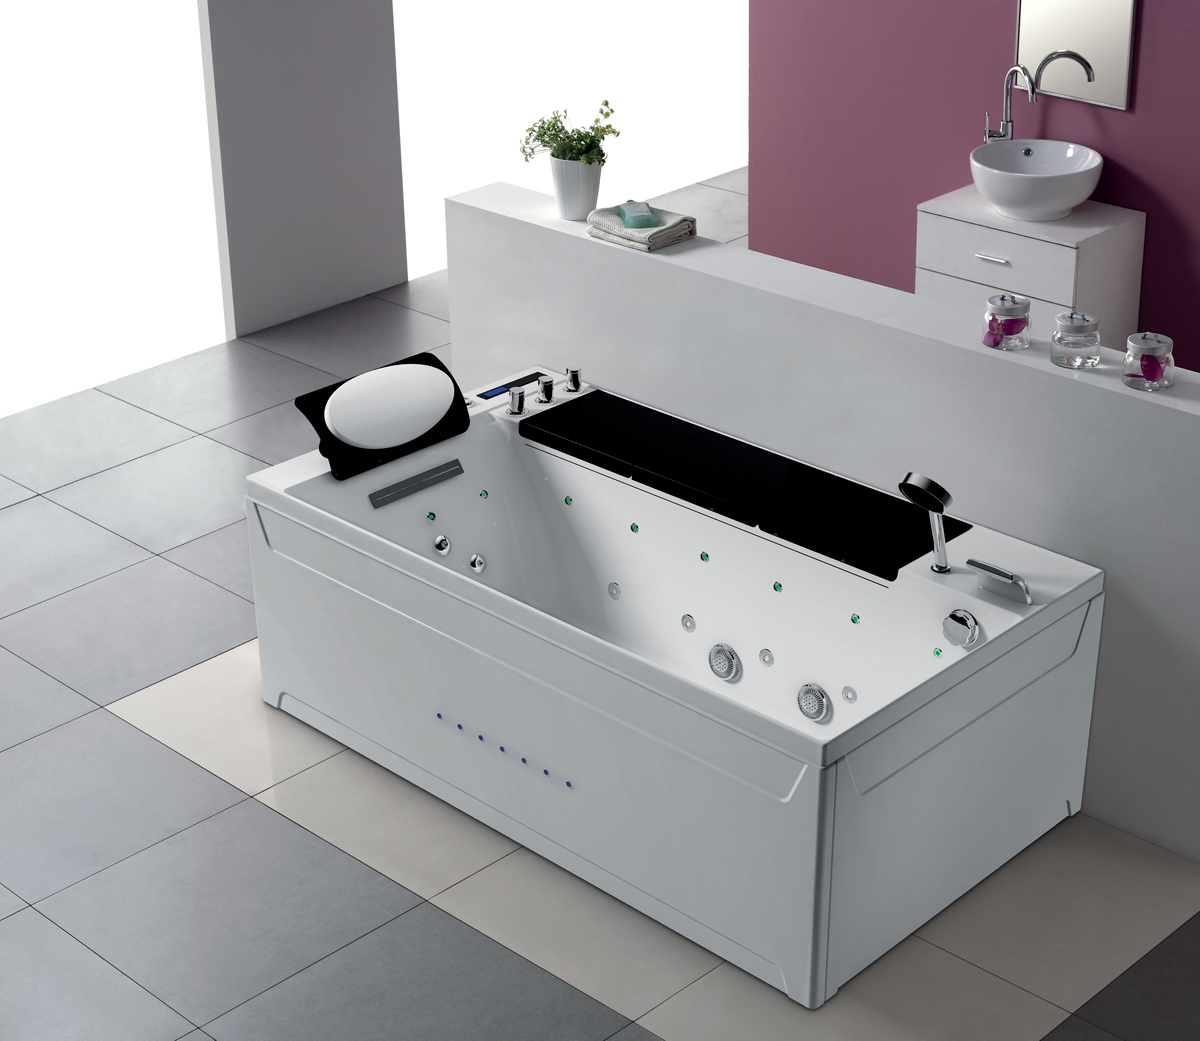 1 personen whirlpool ohio badewanne whirlwanne wasserfall. Black Bedroom Furniture Sets. Home Design Ideas